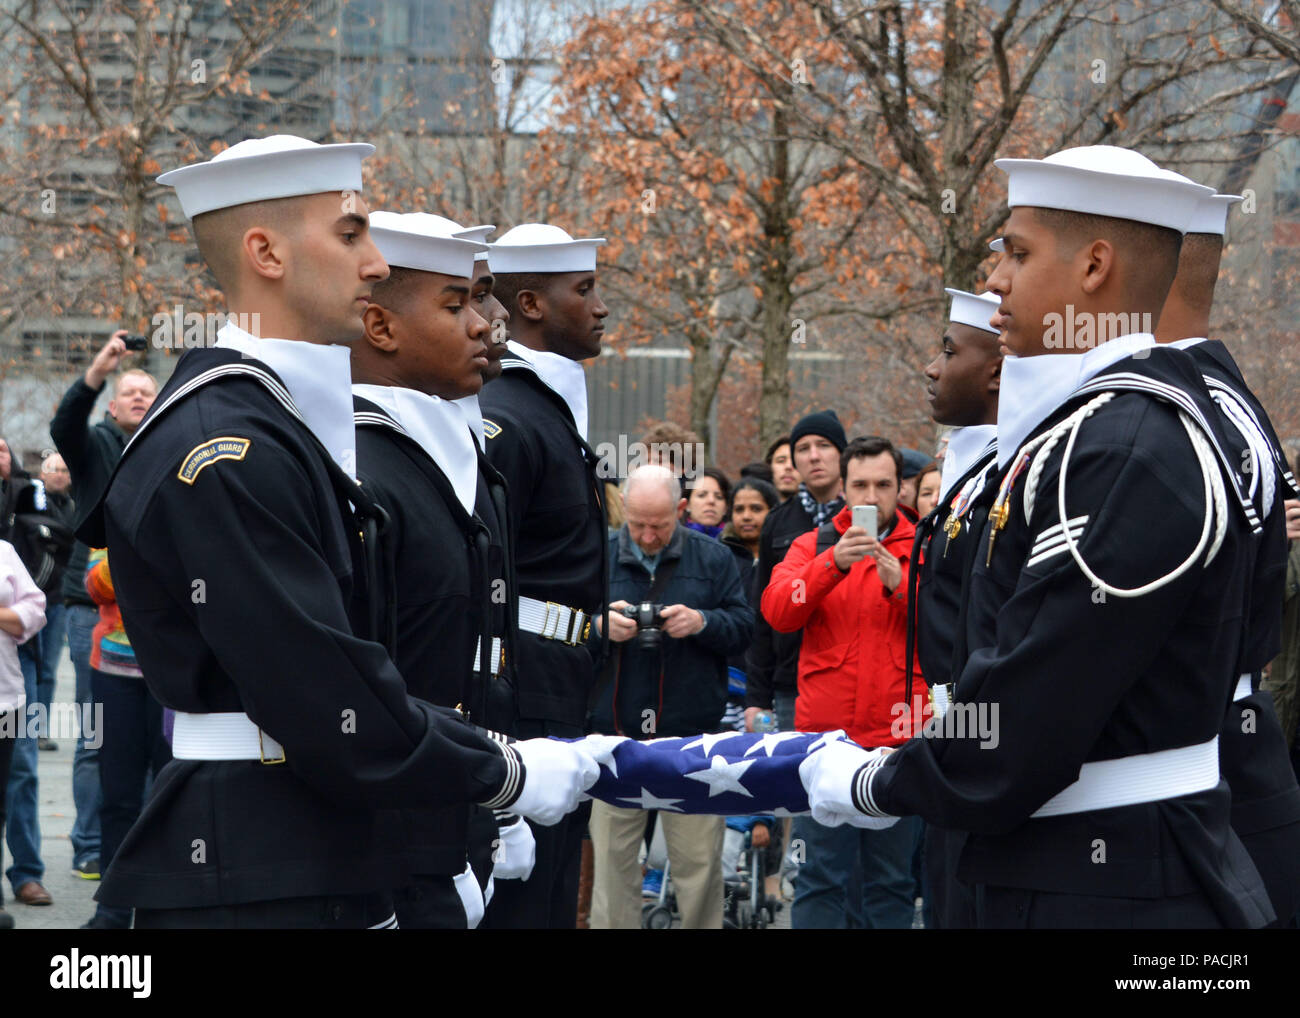 160315-N-LV695-015 NEW YORK (March 15, 2015) U.S. Navy Ceremonial Guardsmen conduct a flag presentation at the 9/11 Memorial Museum. The Ceremonial Guard is the Navy's most prestigious unit and conducts ceremonies for Presidential inaugurations, distinguished visitors, and burials at Arlington National Cemetery. (U.S. Navy photo by Mass Communication Specialist 2nd Class Destiny Cheek/Released) Stock Photo